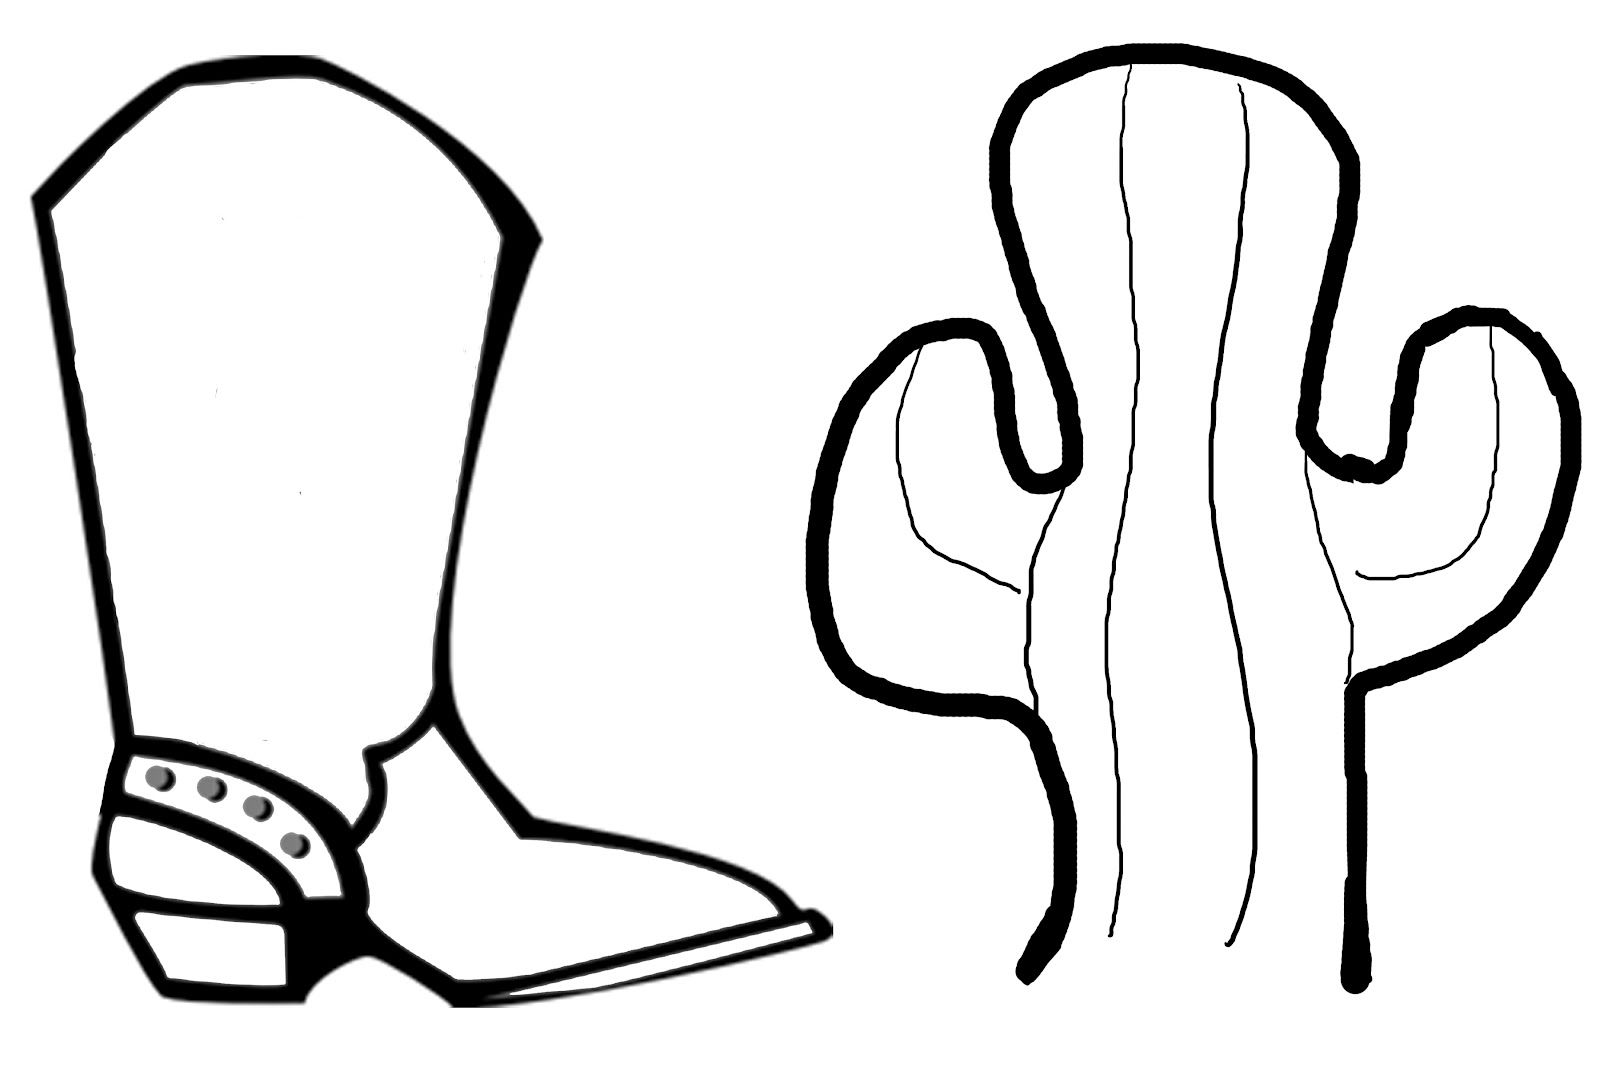 41+ Cowboy boots coloring pages to print ideas in 2021